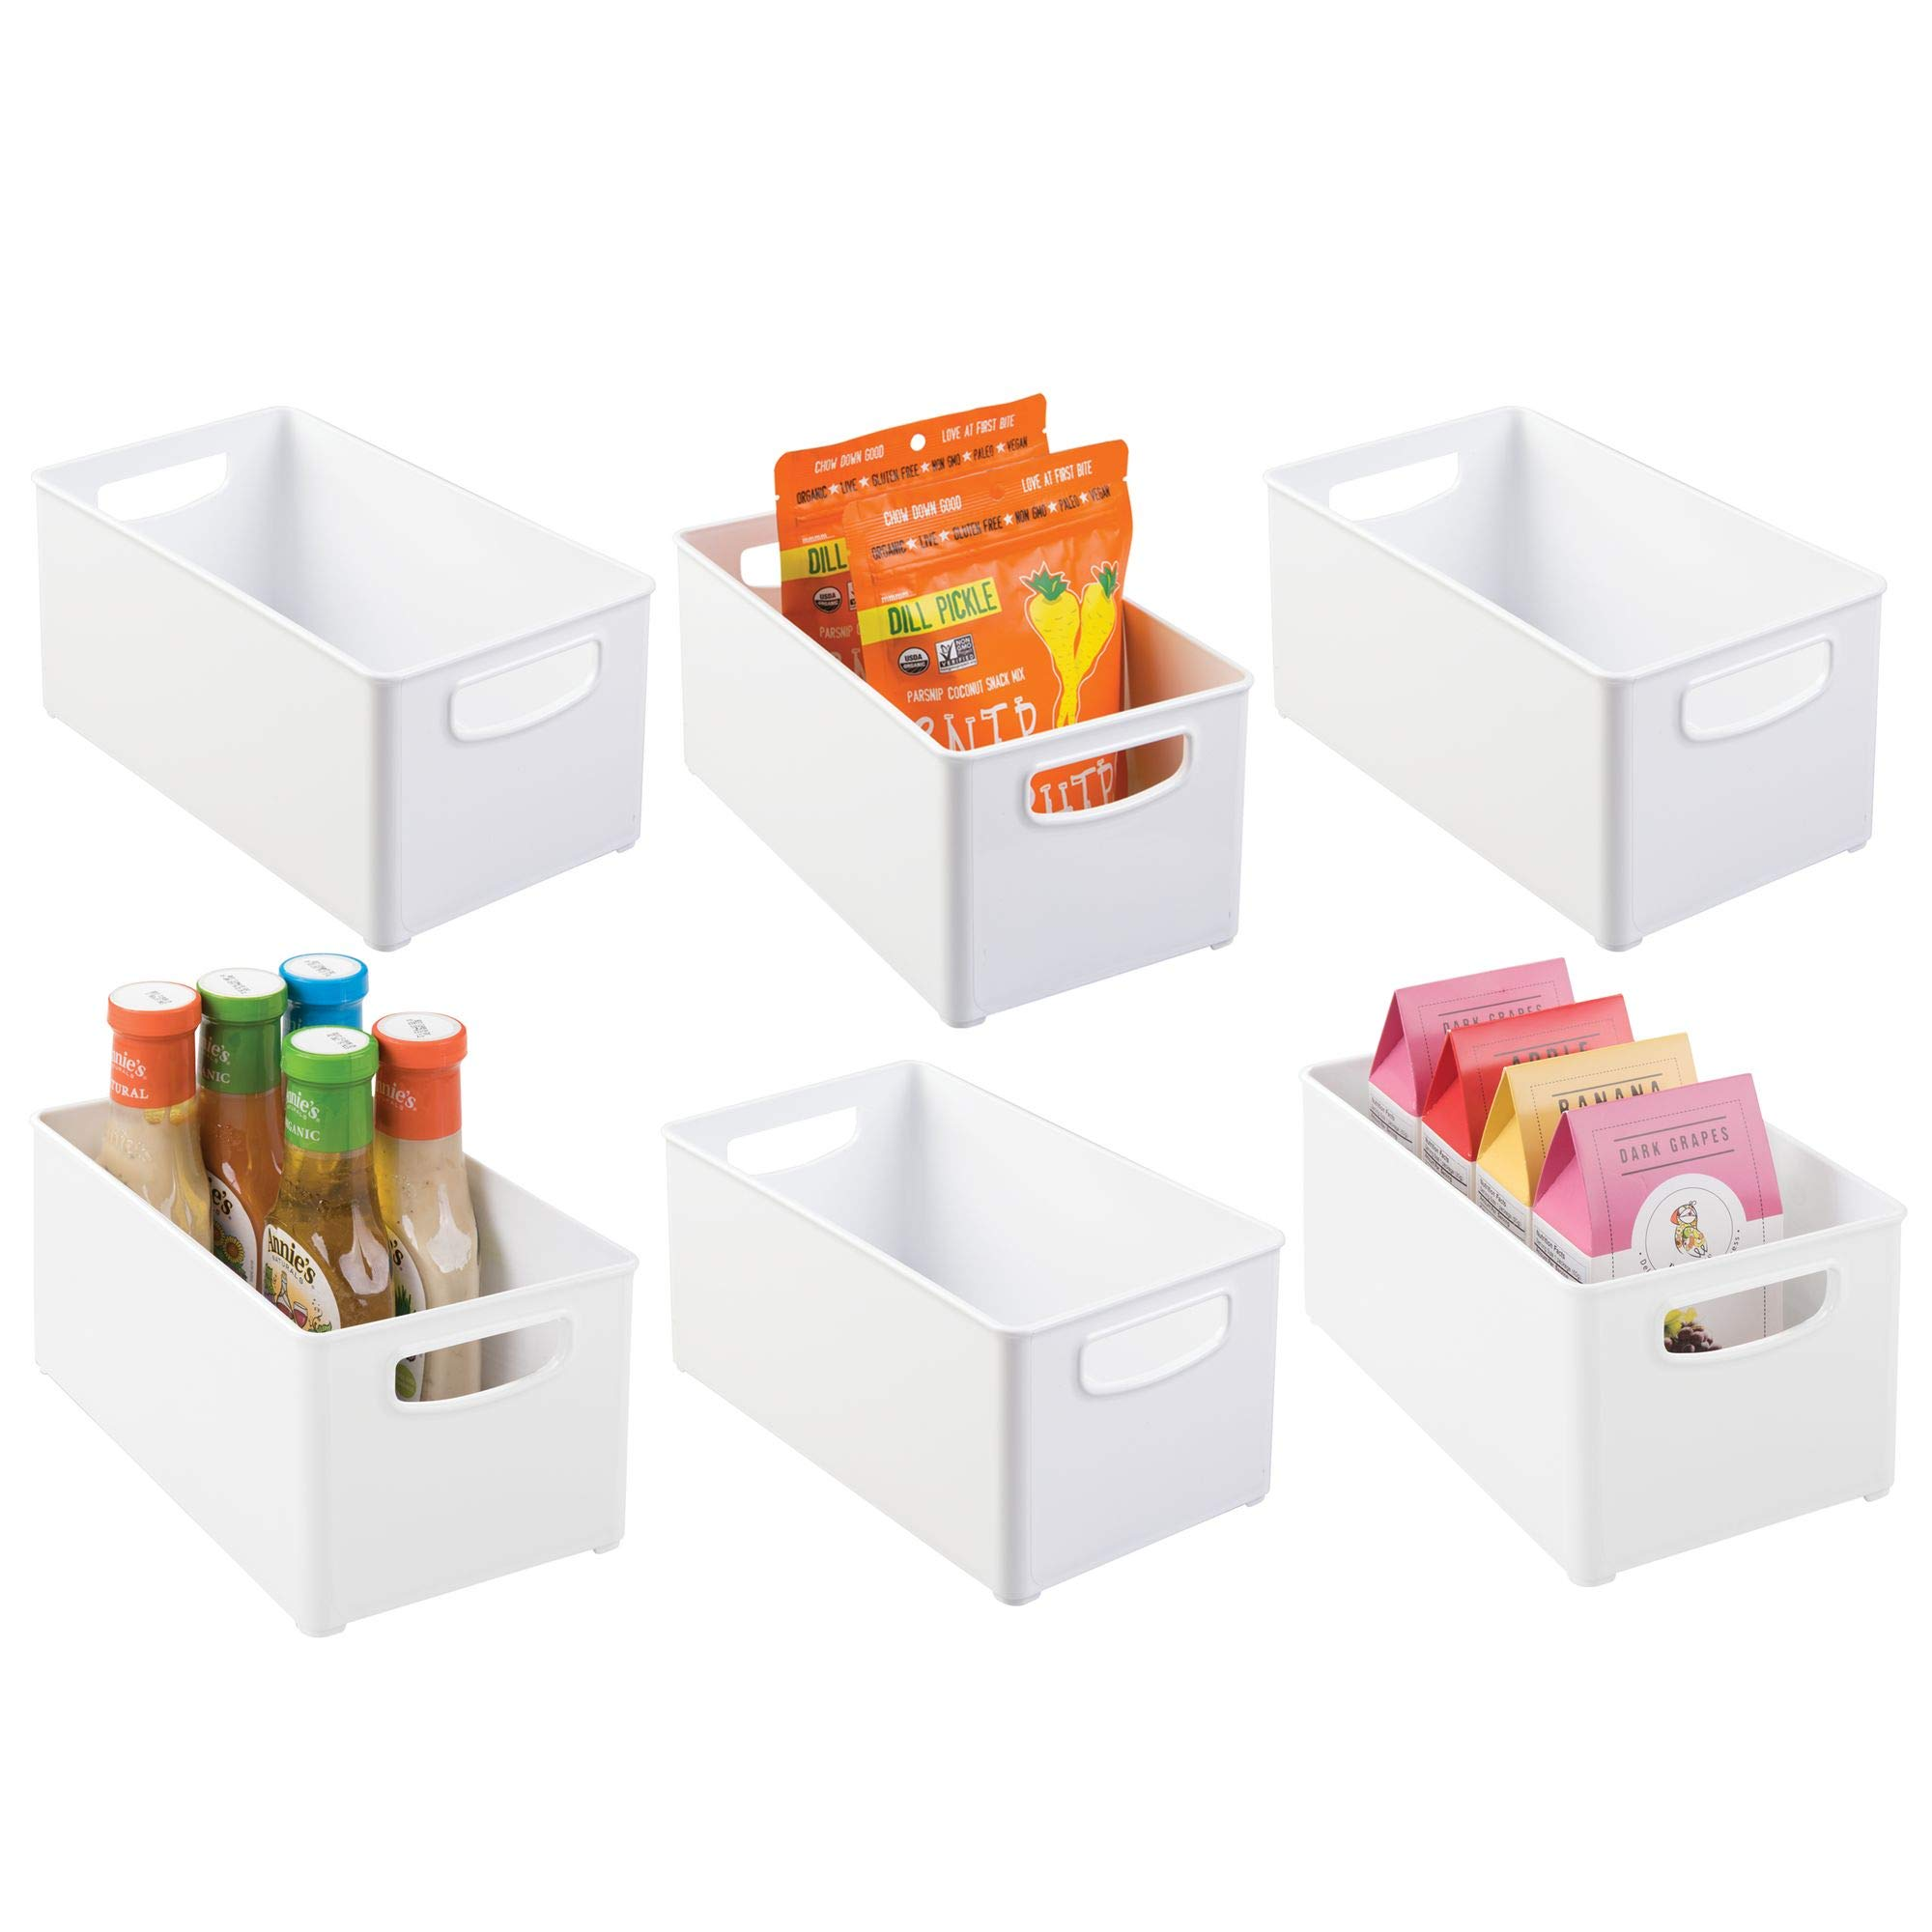 mDesign Stackable Kitchen Pantry Cabinet, Refrigerator or Freezer Food Storage Bins with Handles - Organizer for Fruit, Yogurt, Snacks, Pasta - BPA Free, 6 Pack, 10'' Deep Containers, White